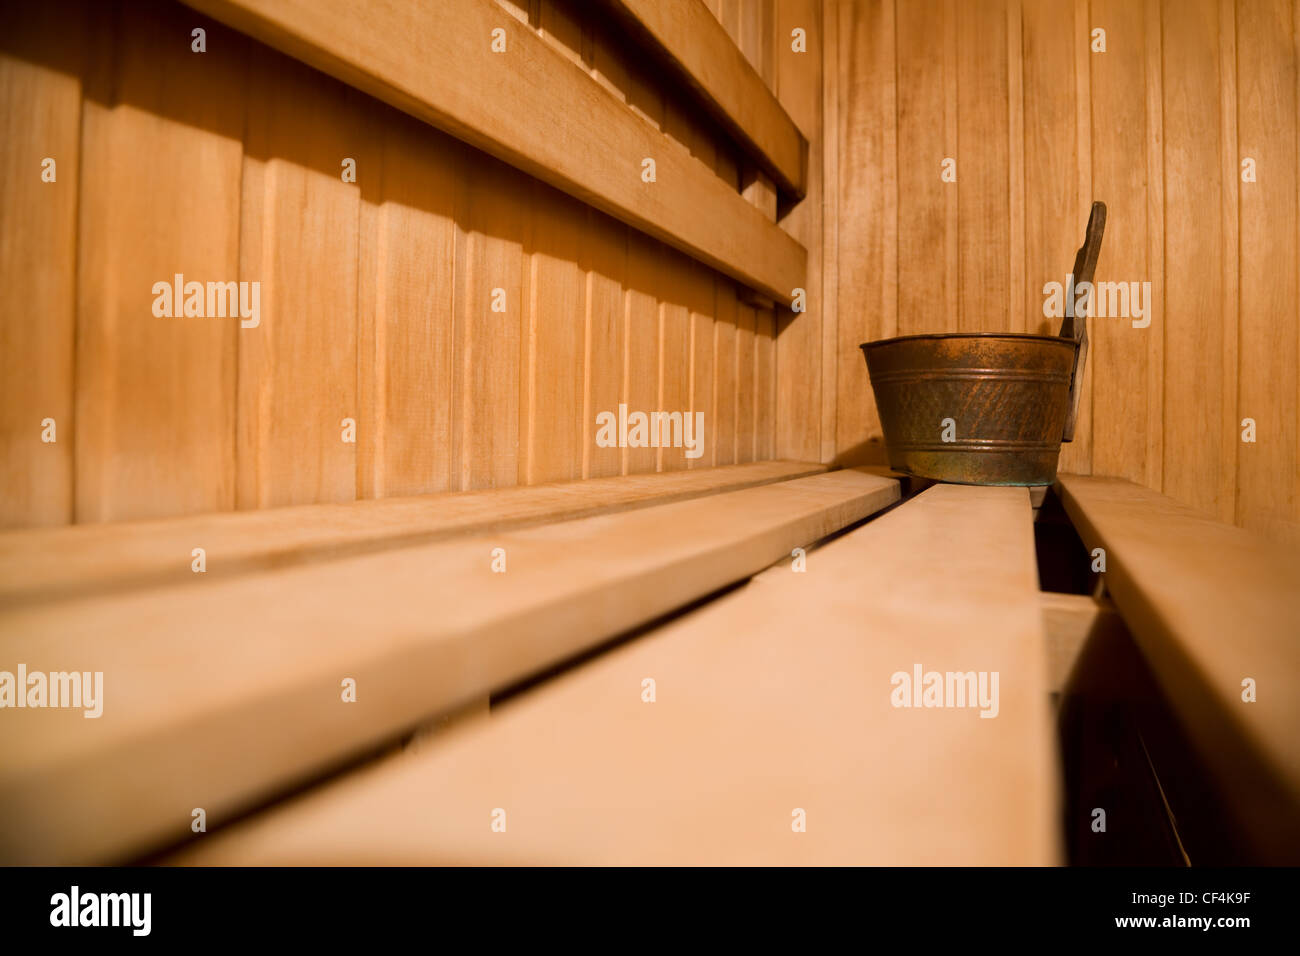 Bench in sauna and copper bucket - Stock Image